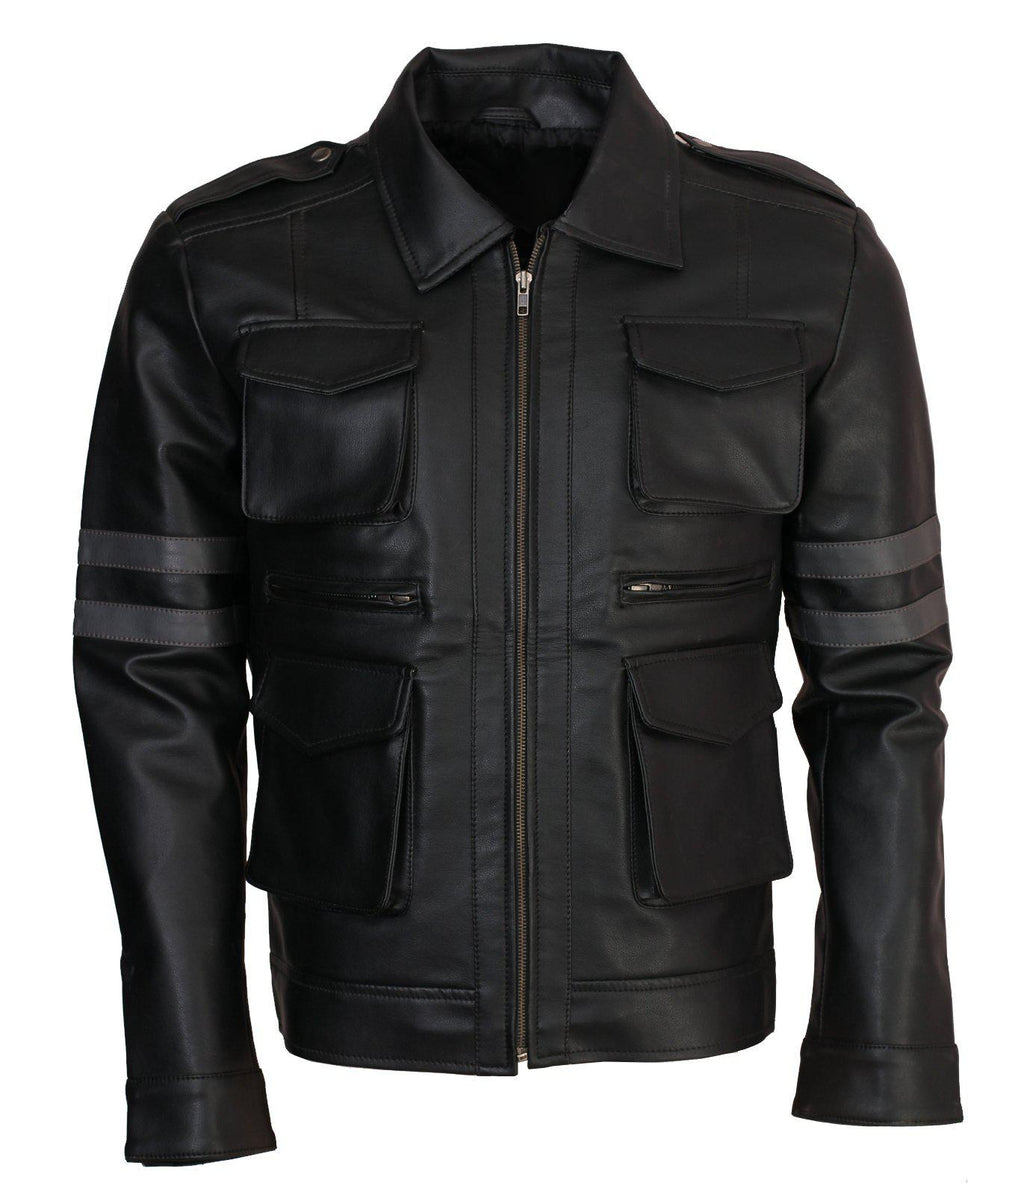 Resident Evil Leather Jacket